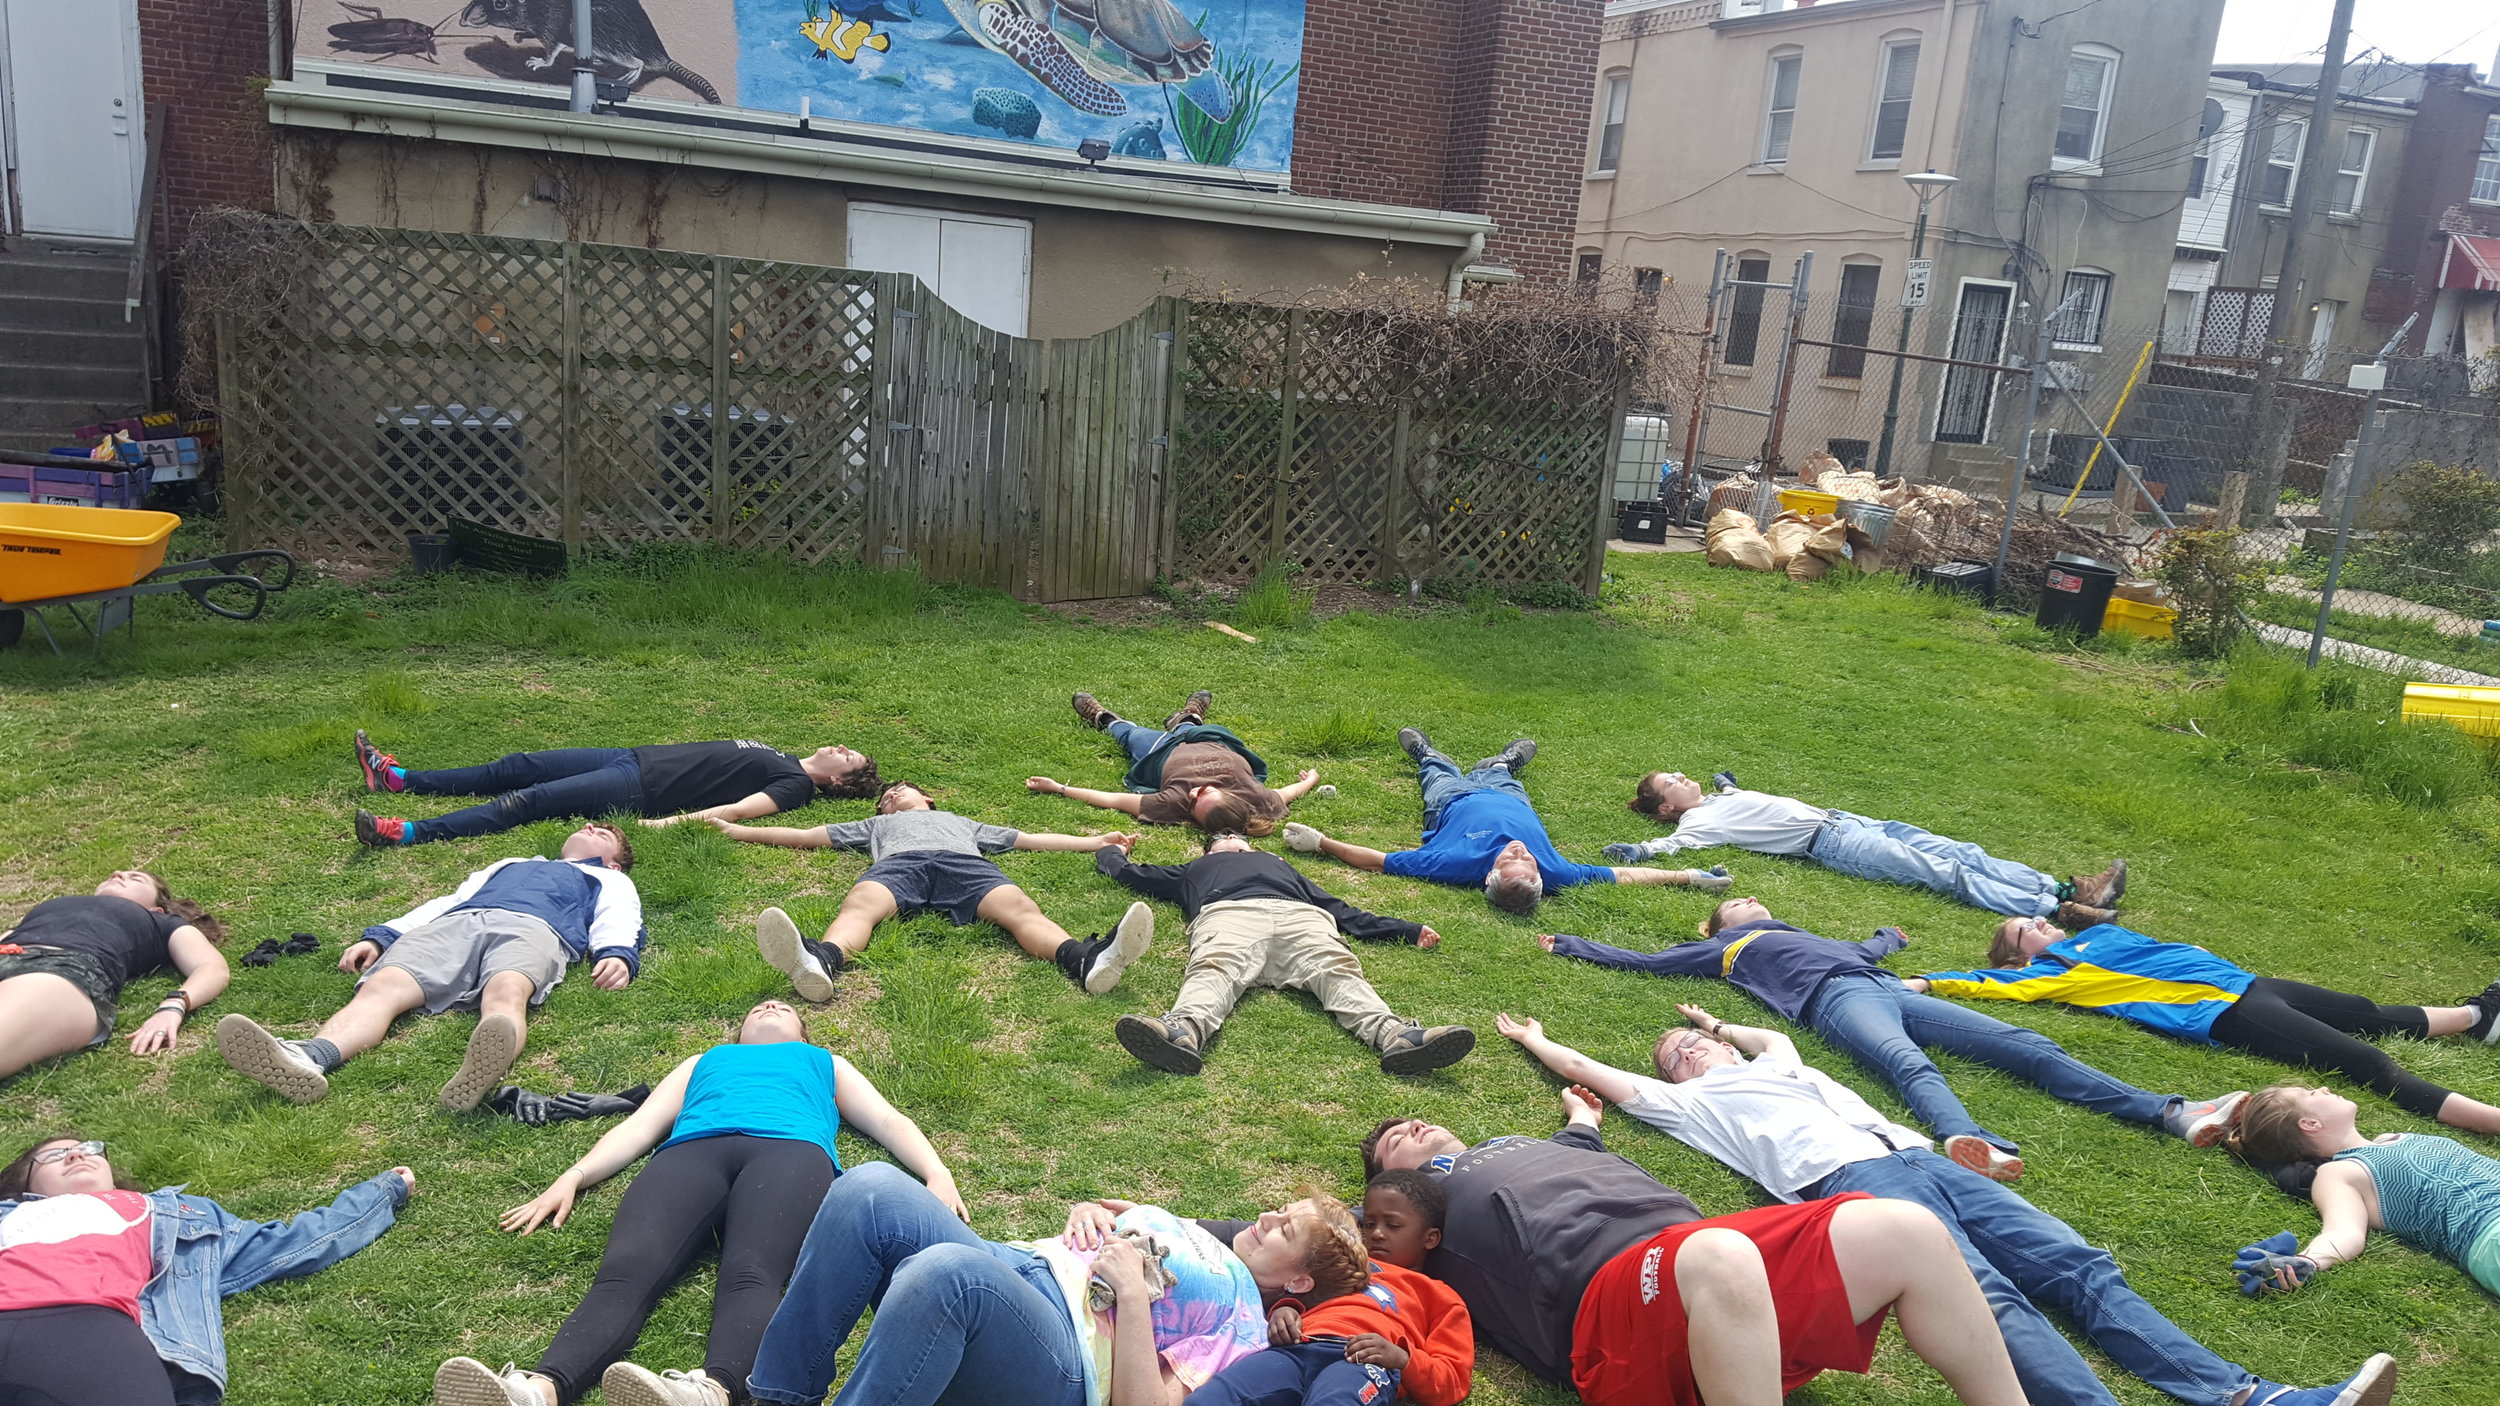 It is finished! UCC Norwell takes a rest to soak up the sun and take a breath on the last day of service at Amazing Grace Lutheran Church in McElderry Park, Baltimore, Maryland. Photo: Mel Lowry